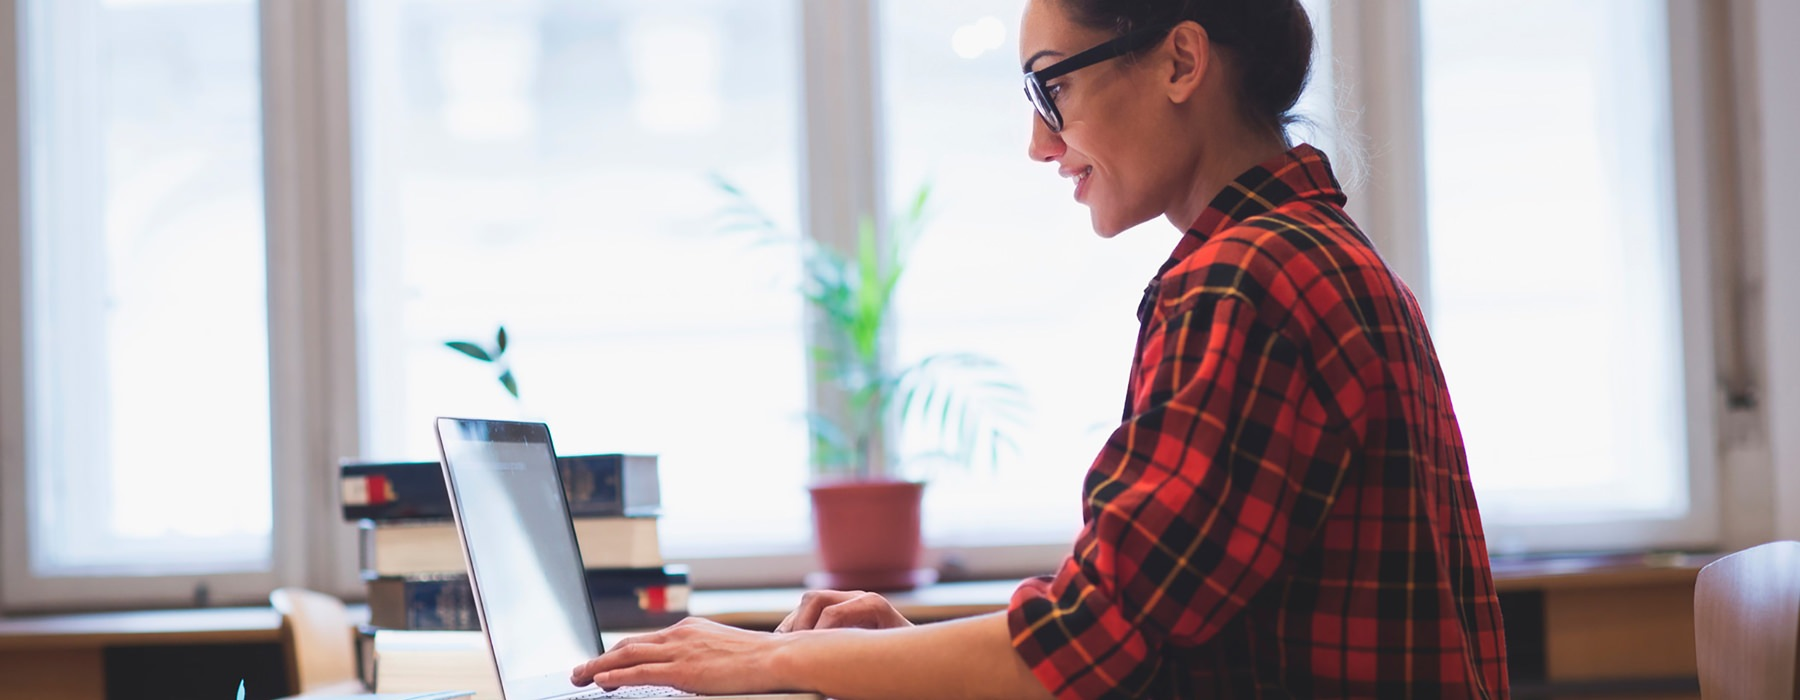 stock image of woman on laptop